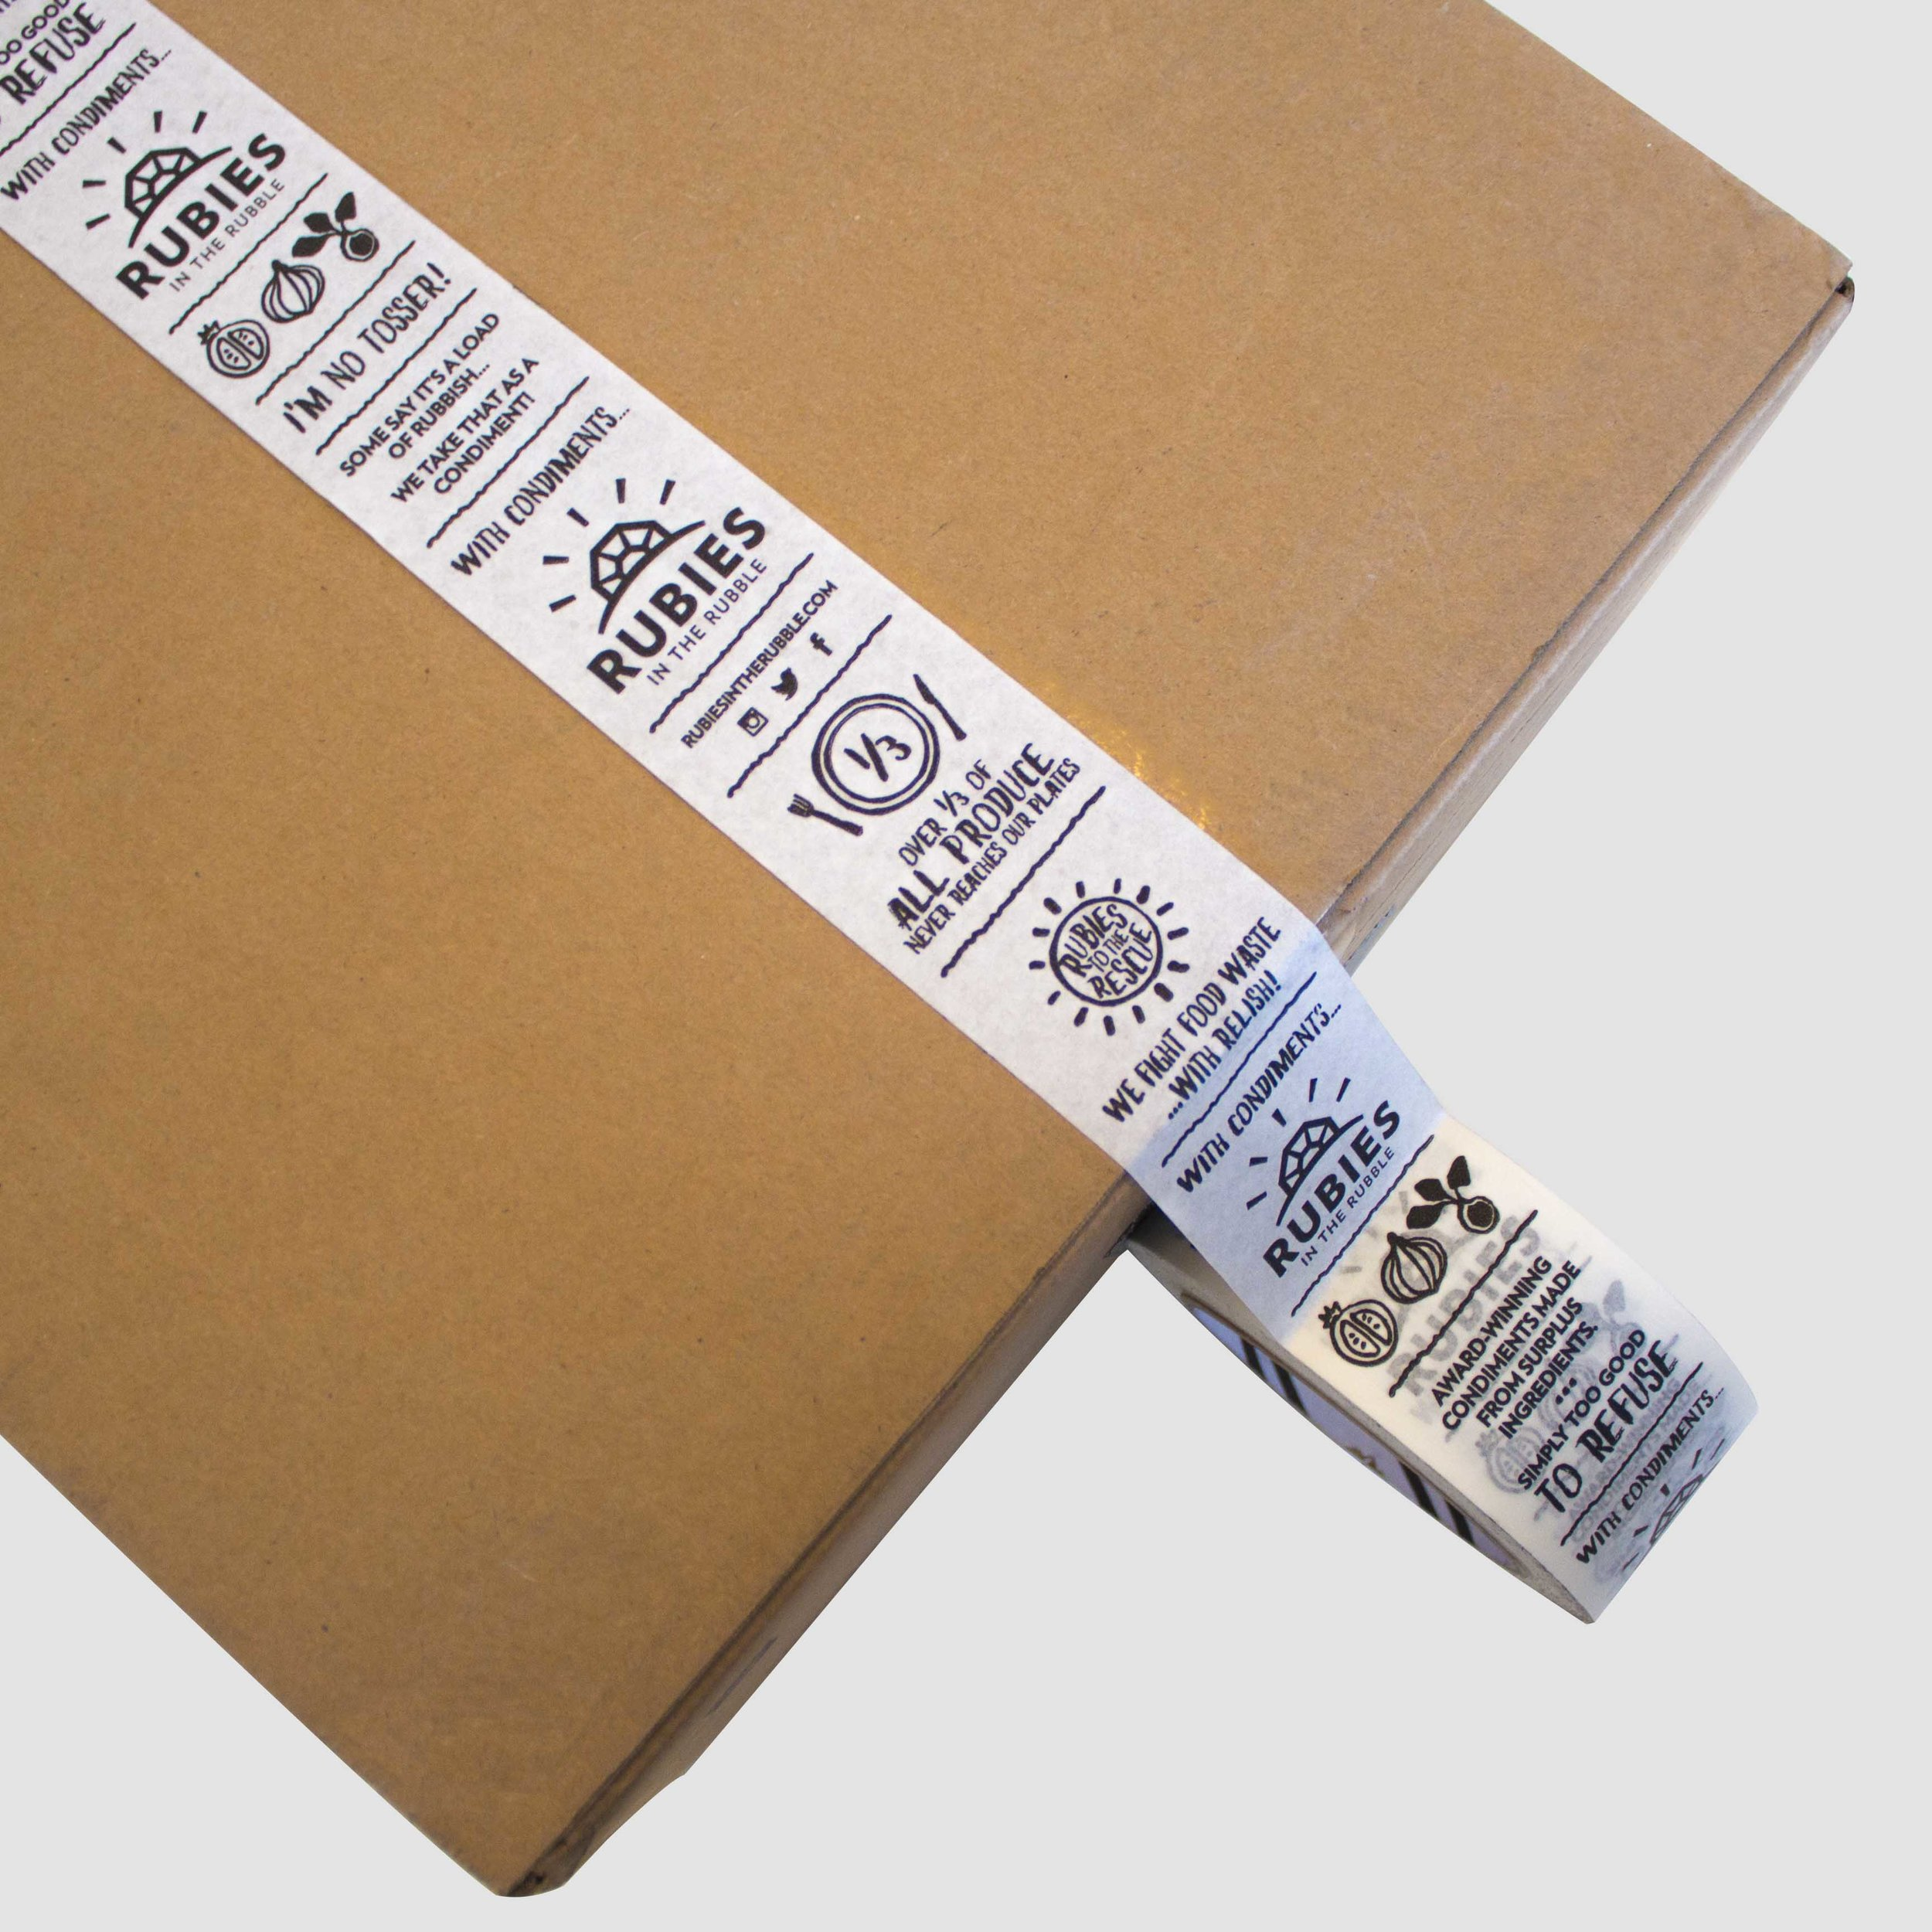 We recently printed some packing tape as a way of branding any parcels we send out in a cost effective way.